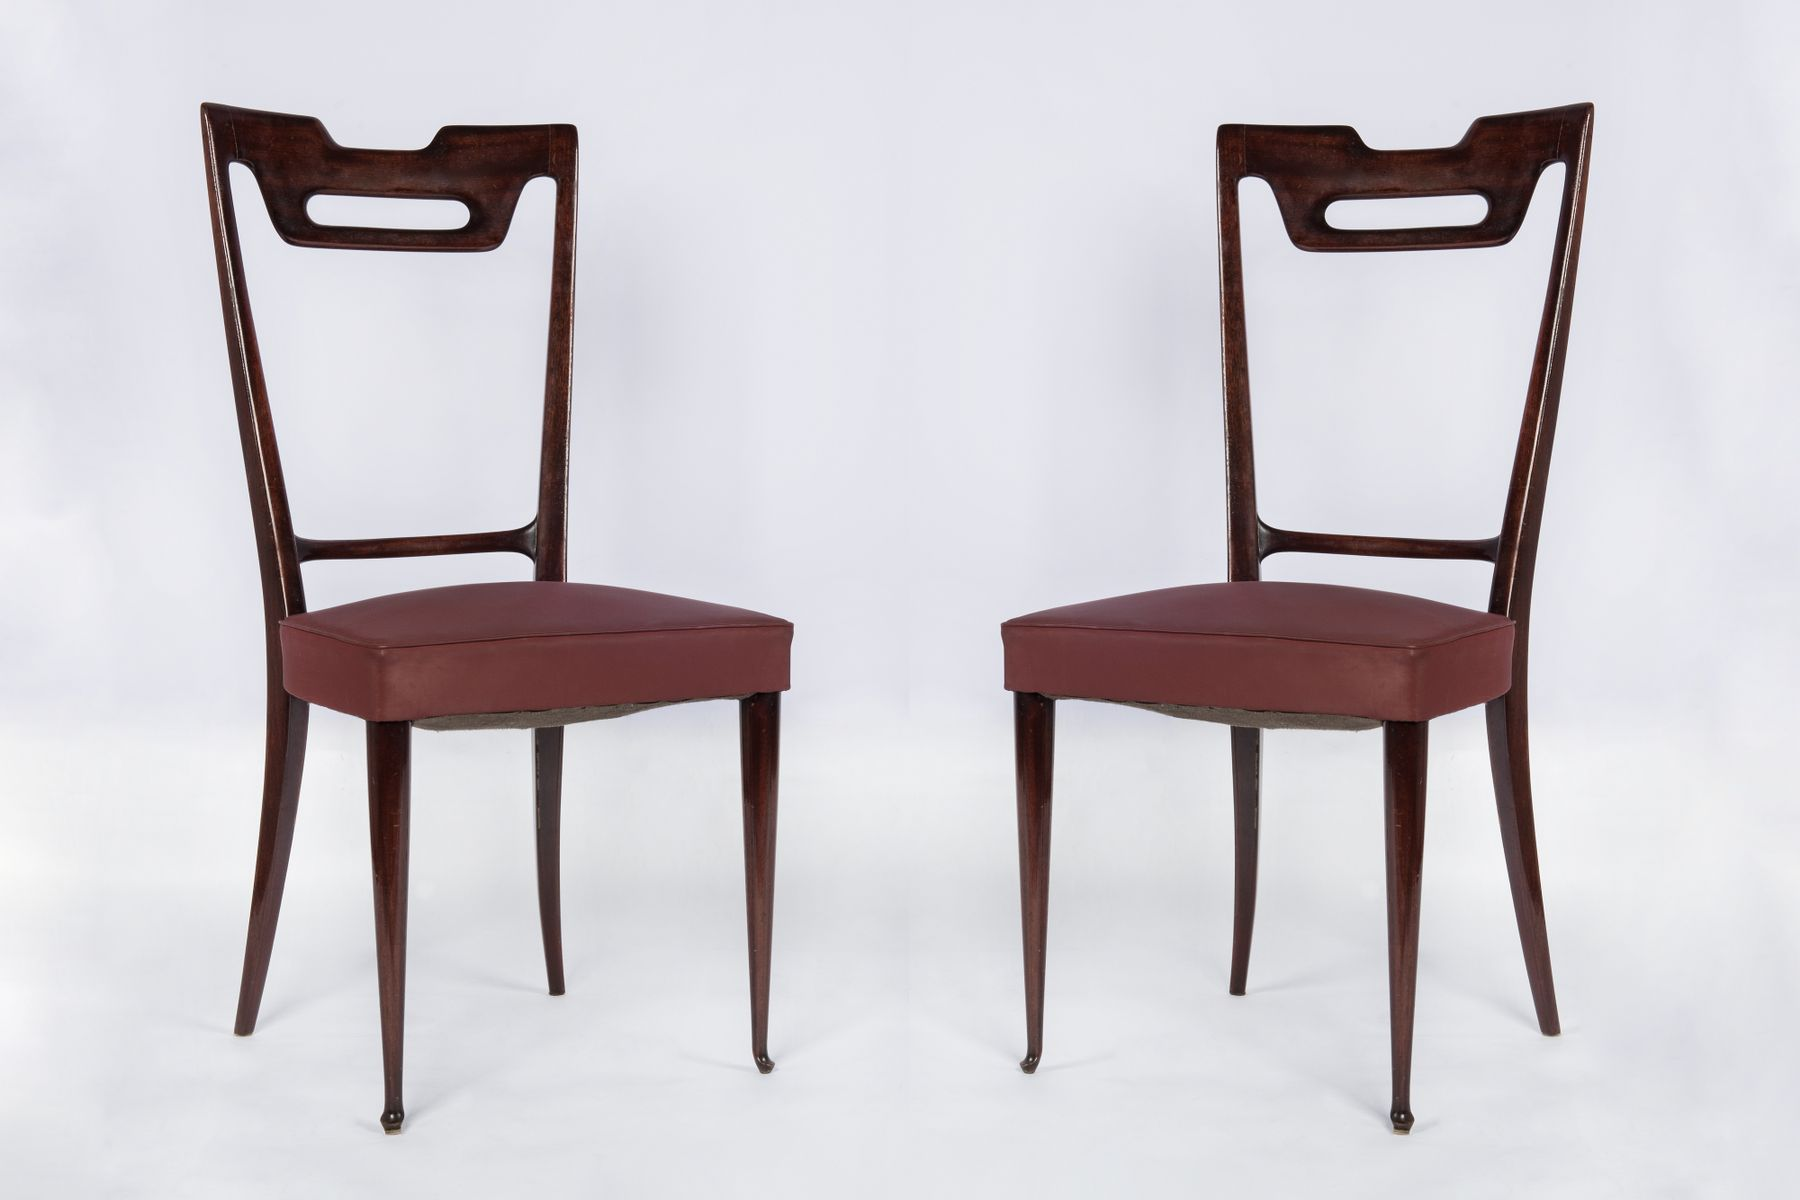 Dining chairs 1950s set of 8 for sale at pamono for Cheap dining chairs set of 8